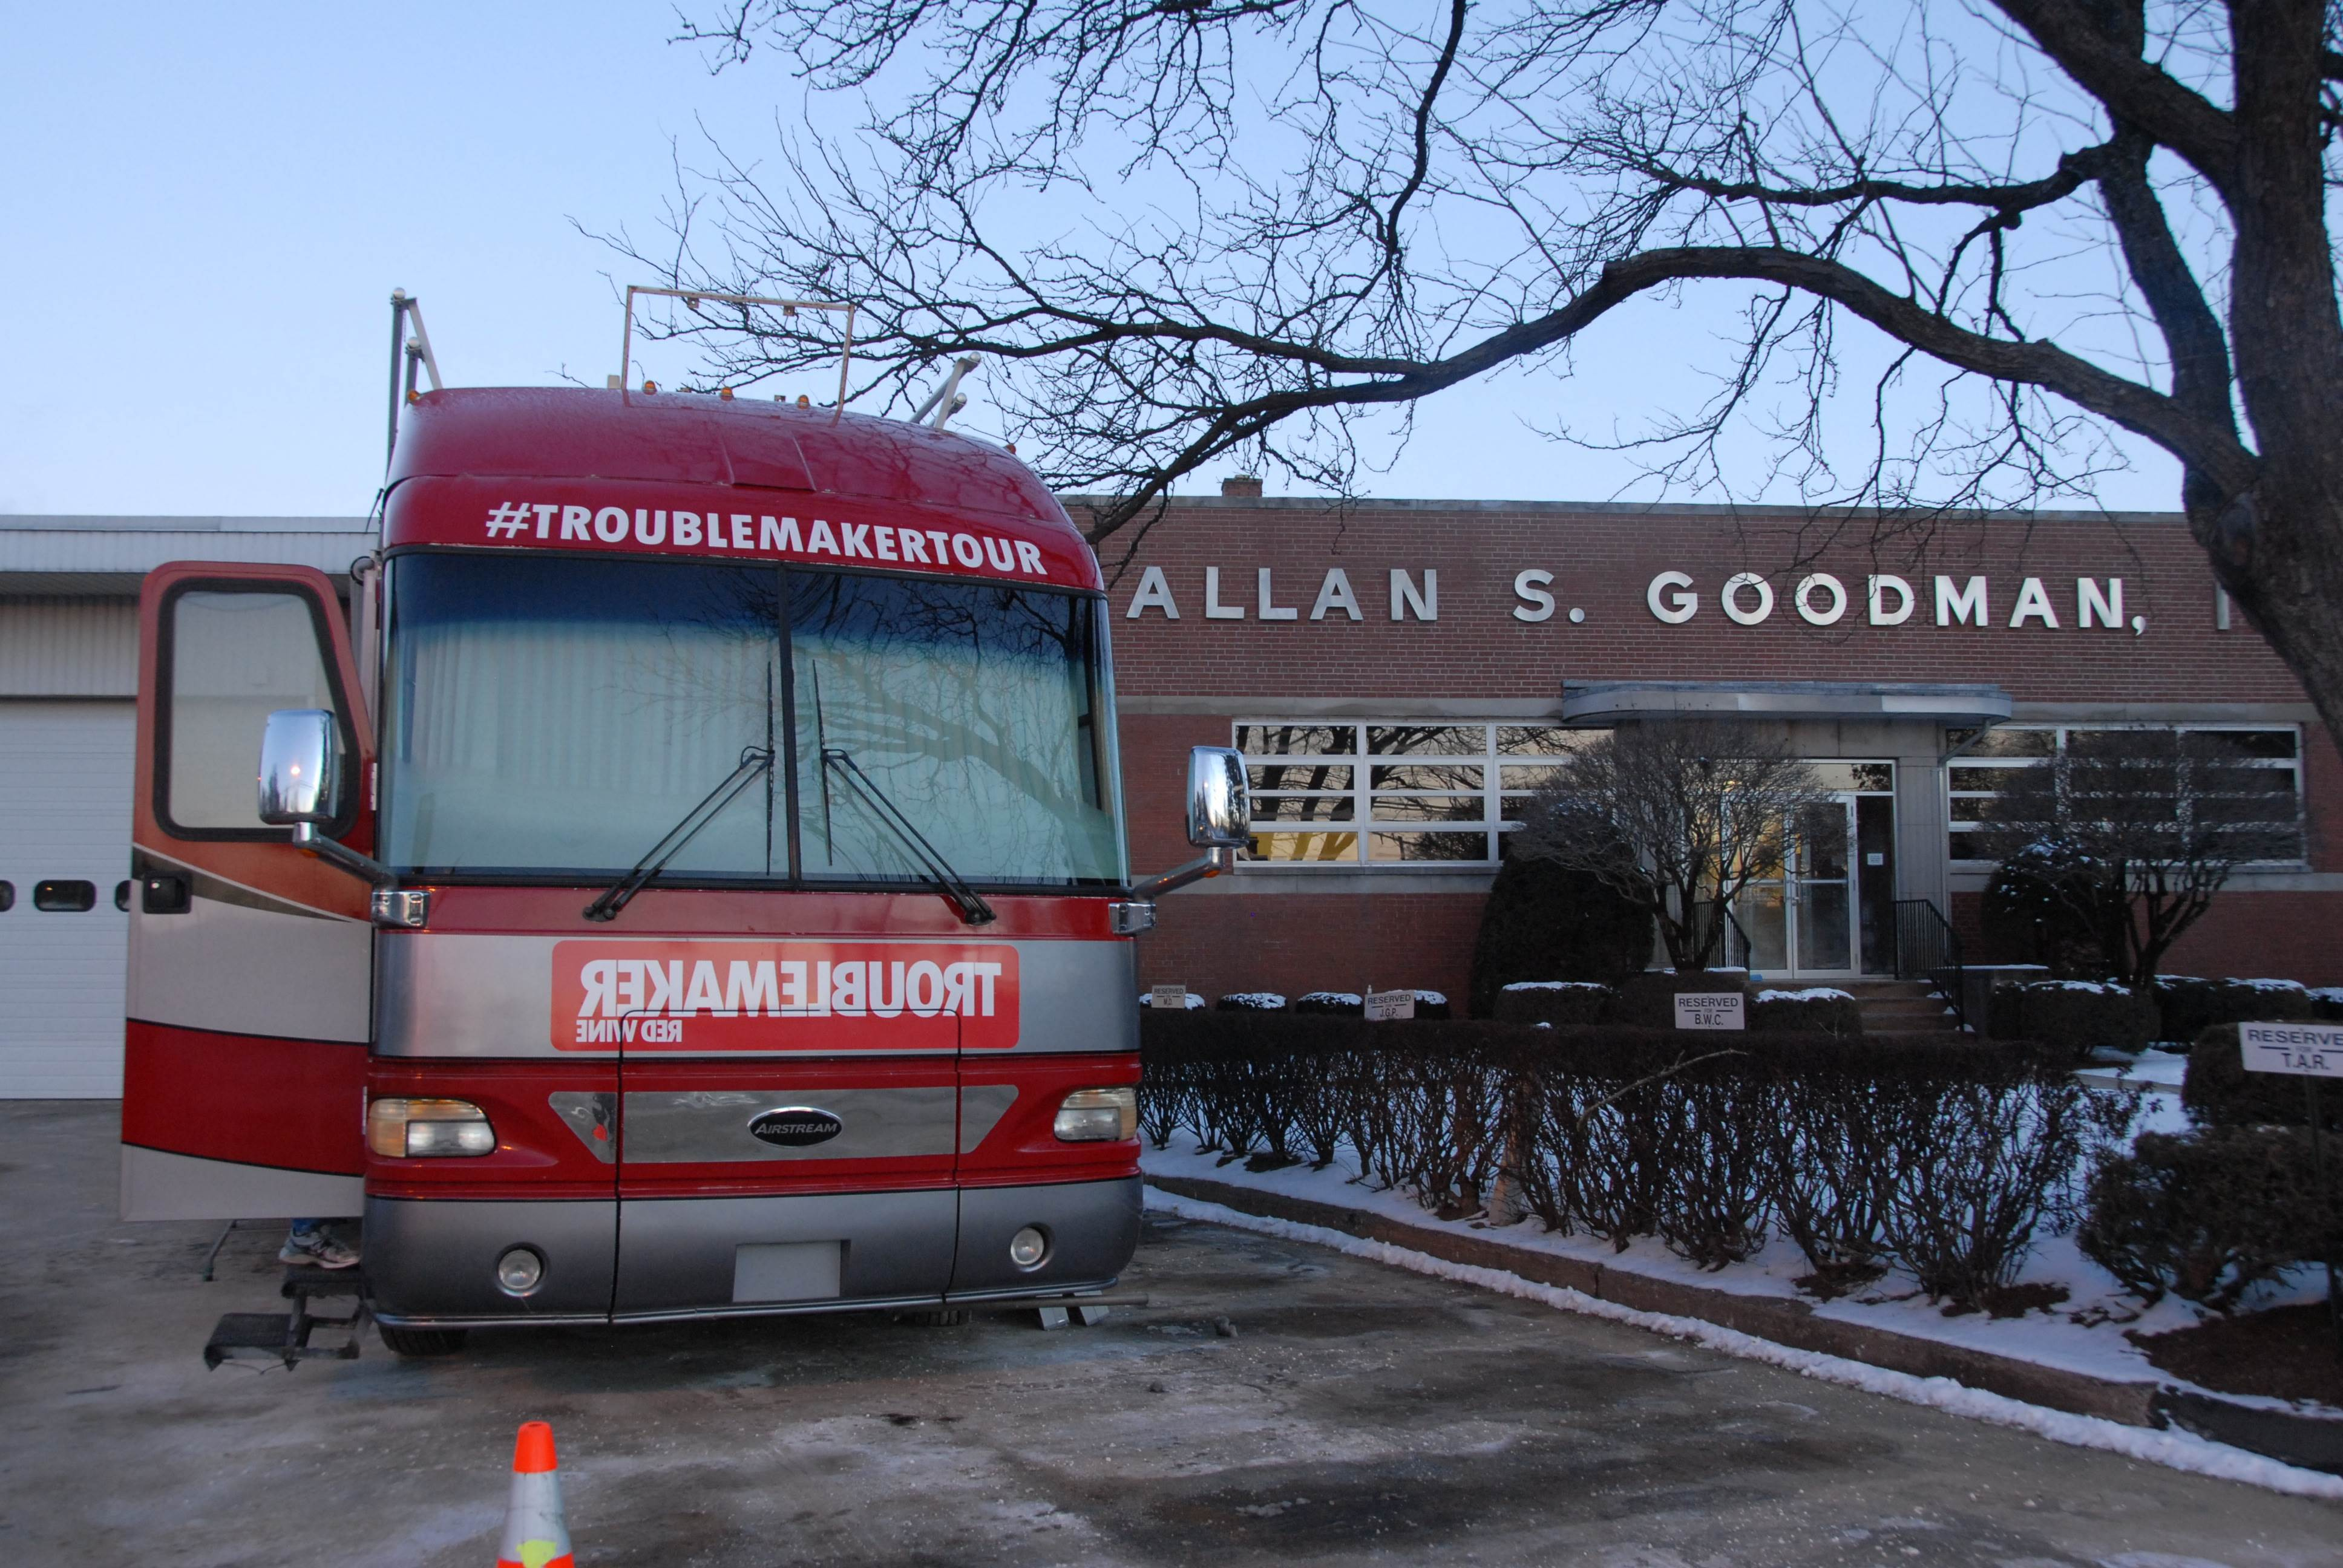 Troublemaker Red Bus Comes to AS Goodman